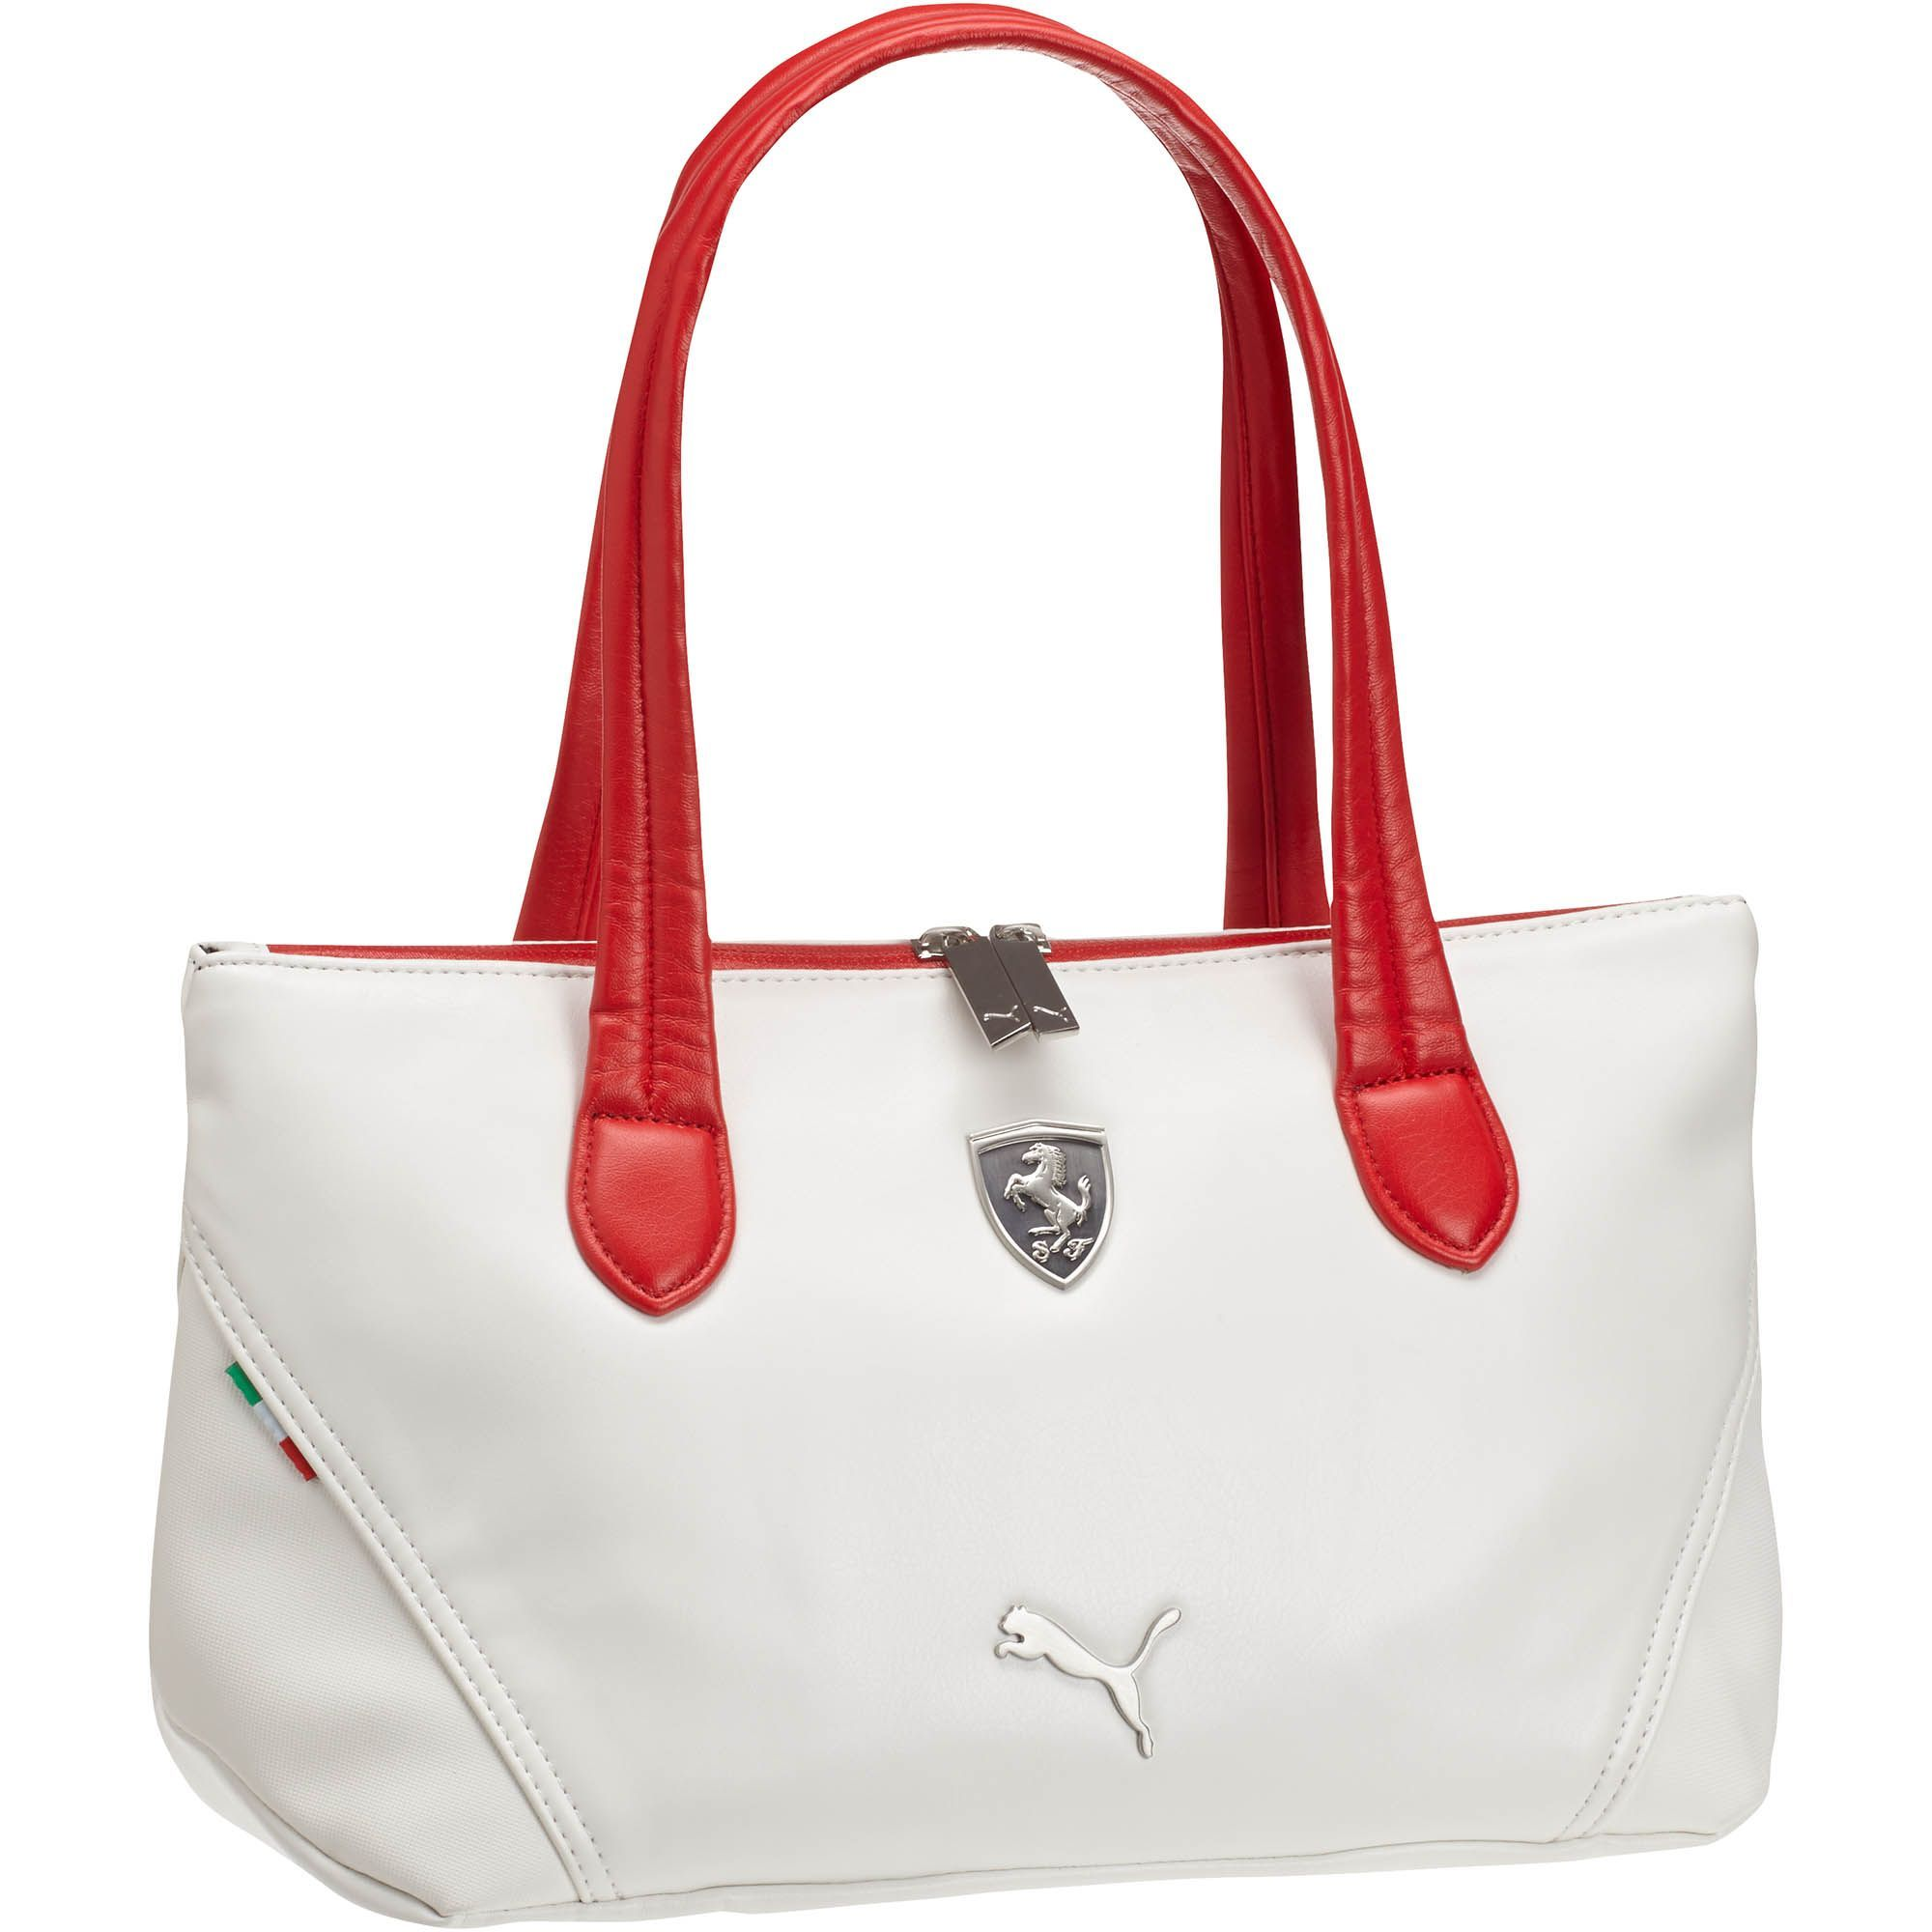 PUMA Ferrari Handbag | - from the official Puma® Online ...